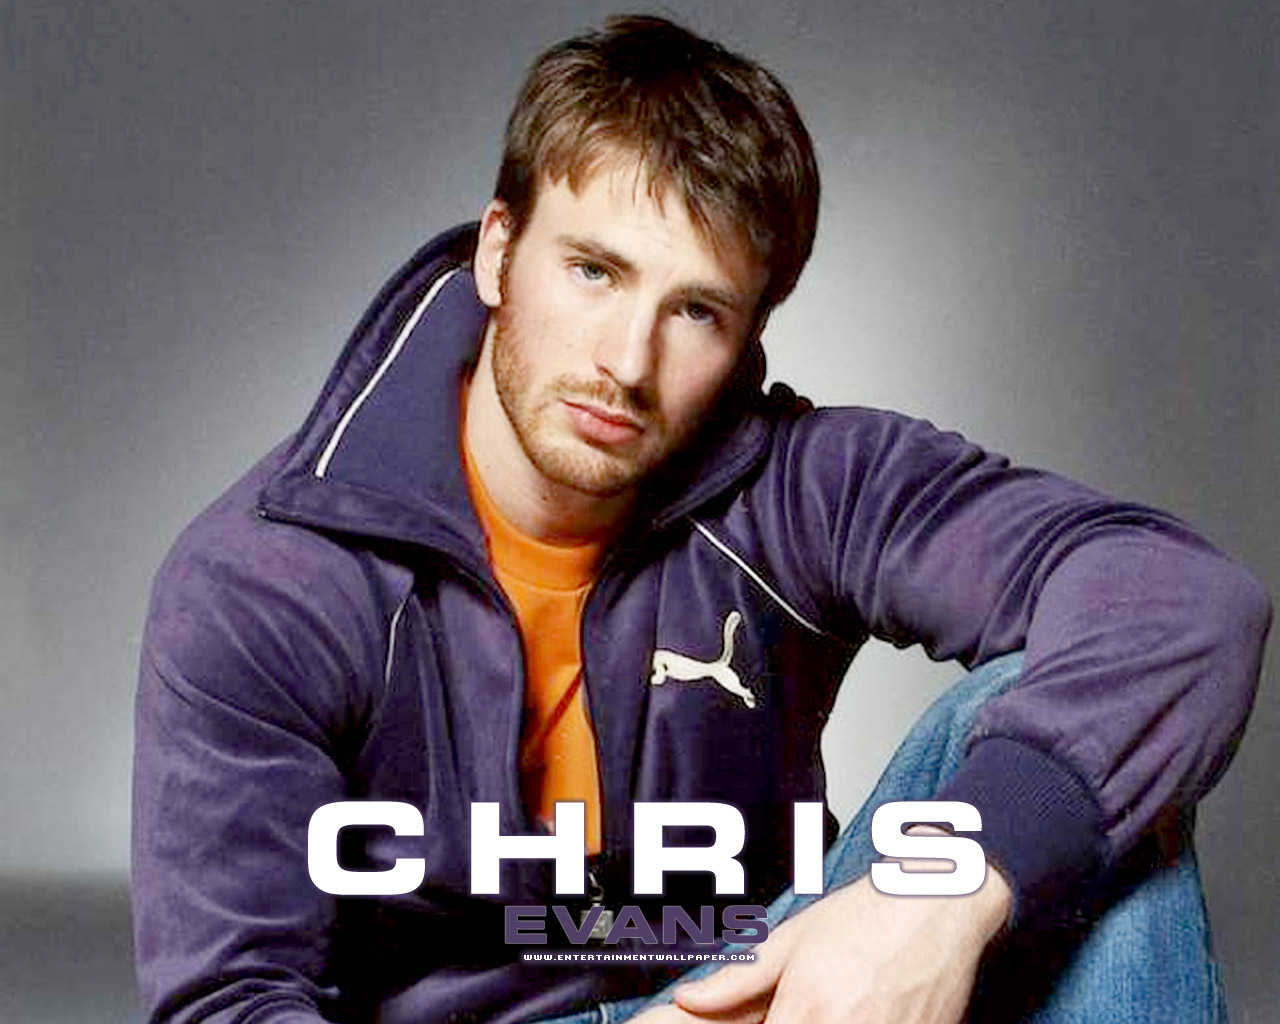 Chris Evans - Chris Evans Wallpaper  645401  - Fanpop